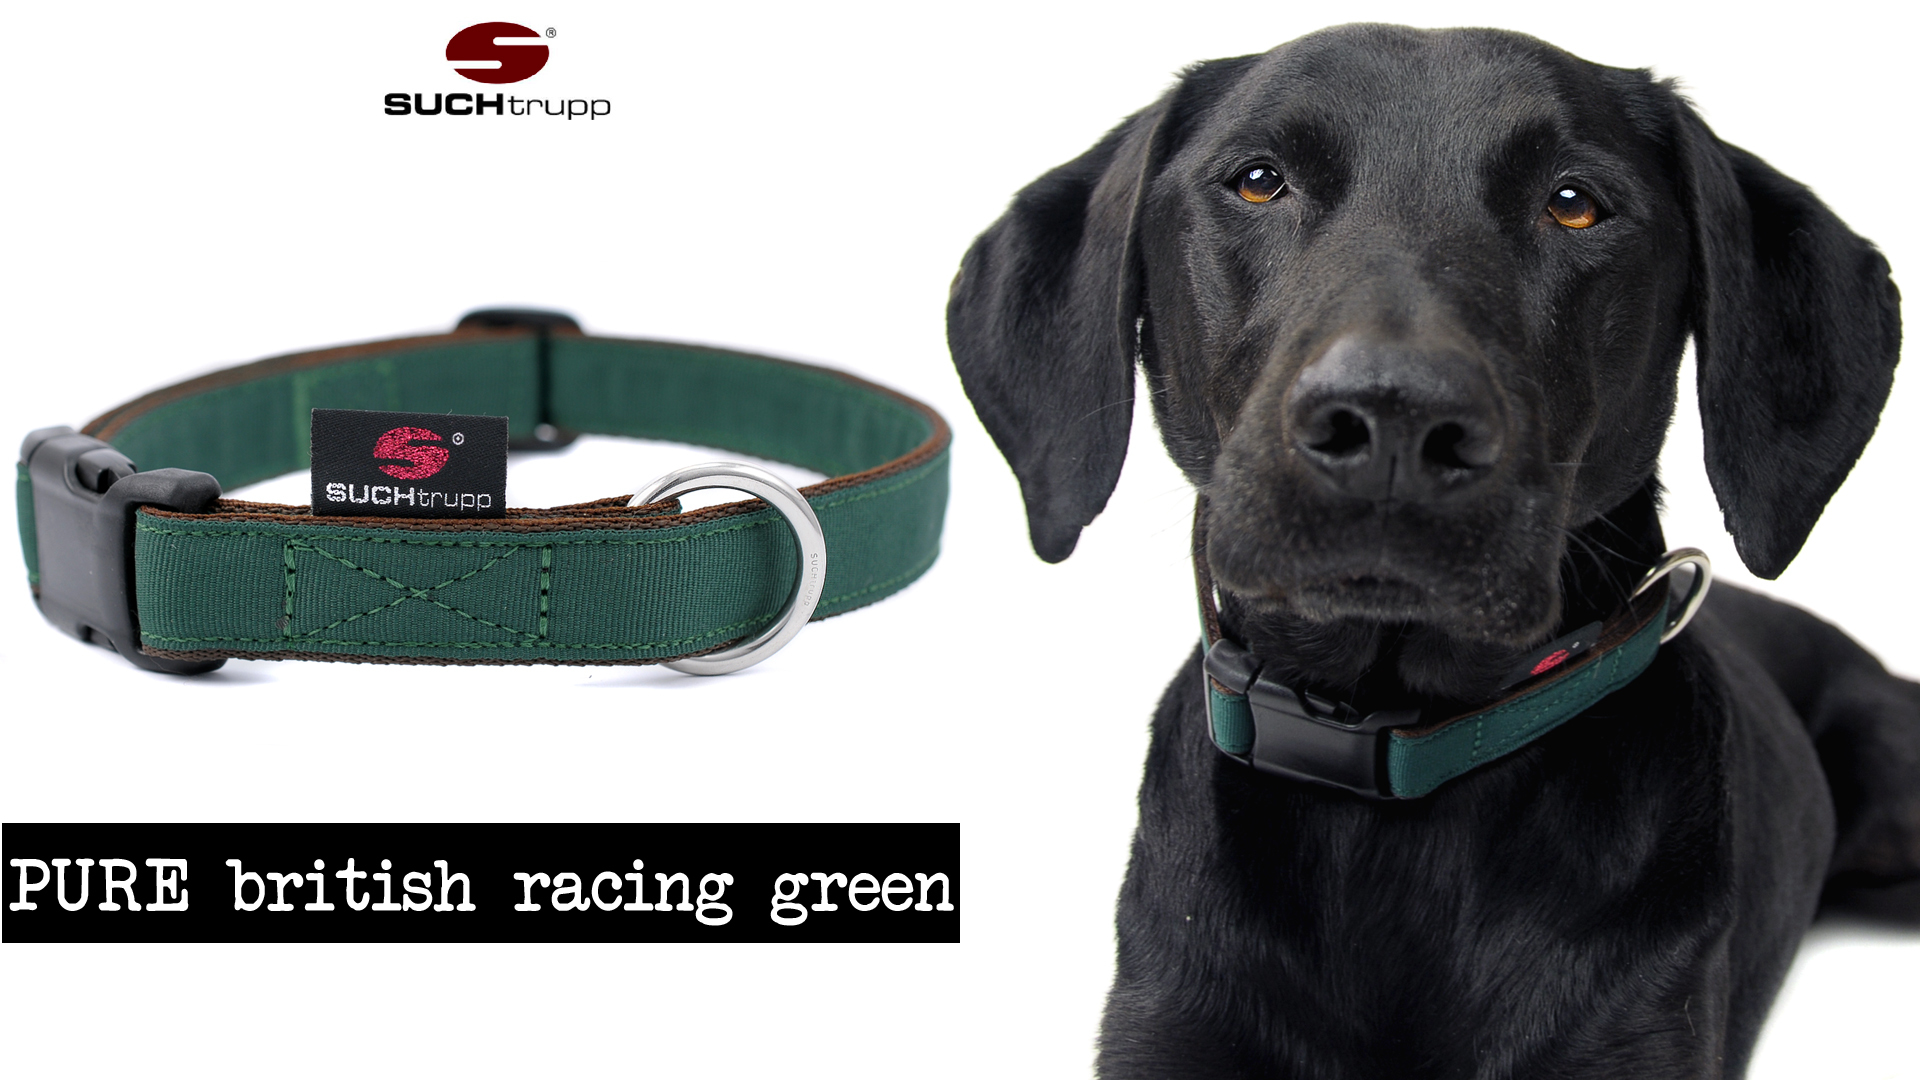 PURE_BRITISH_RACING_GREEN,_Hundehalsband_l,_SUCHtrupp,_ben